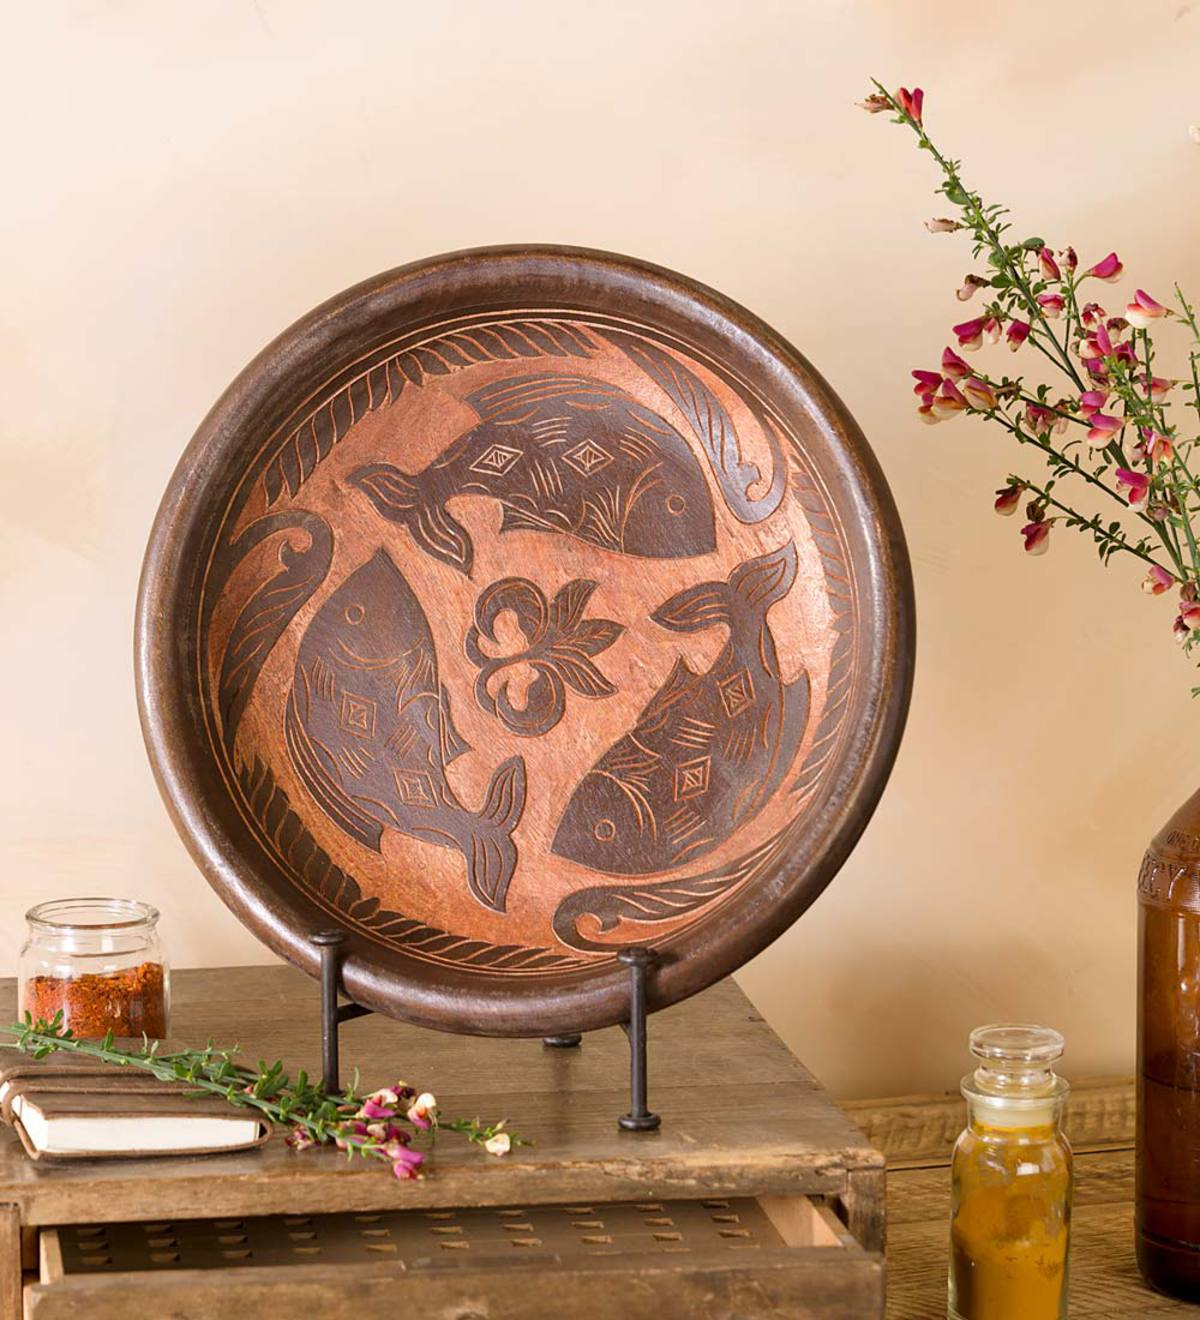 Decorative Wooden Plate with Fish Motif